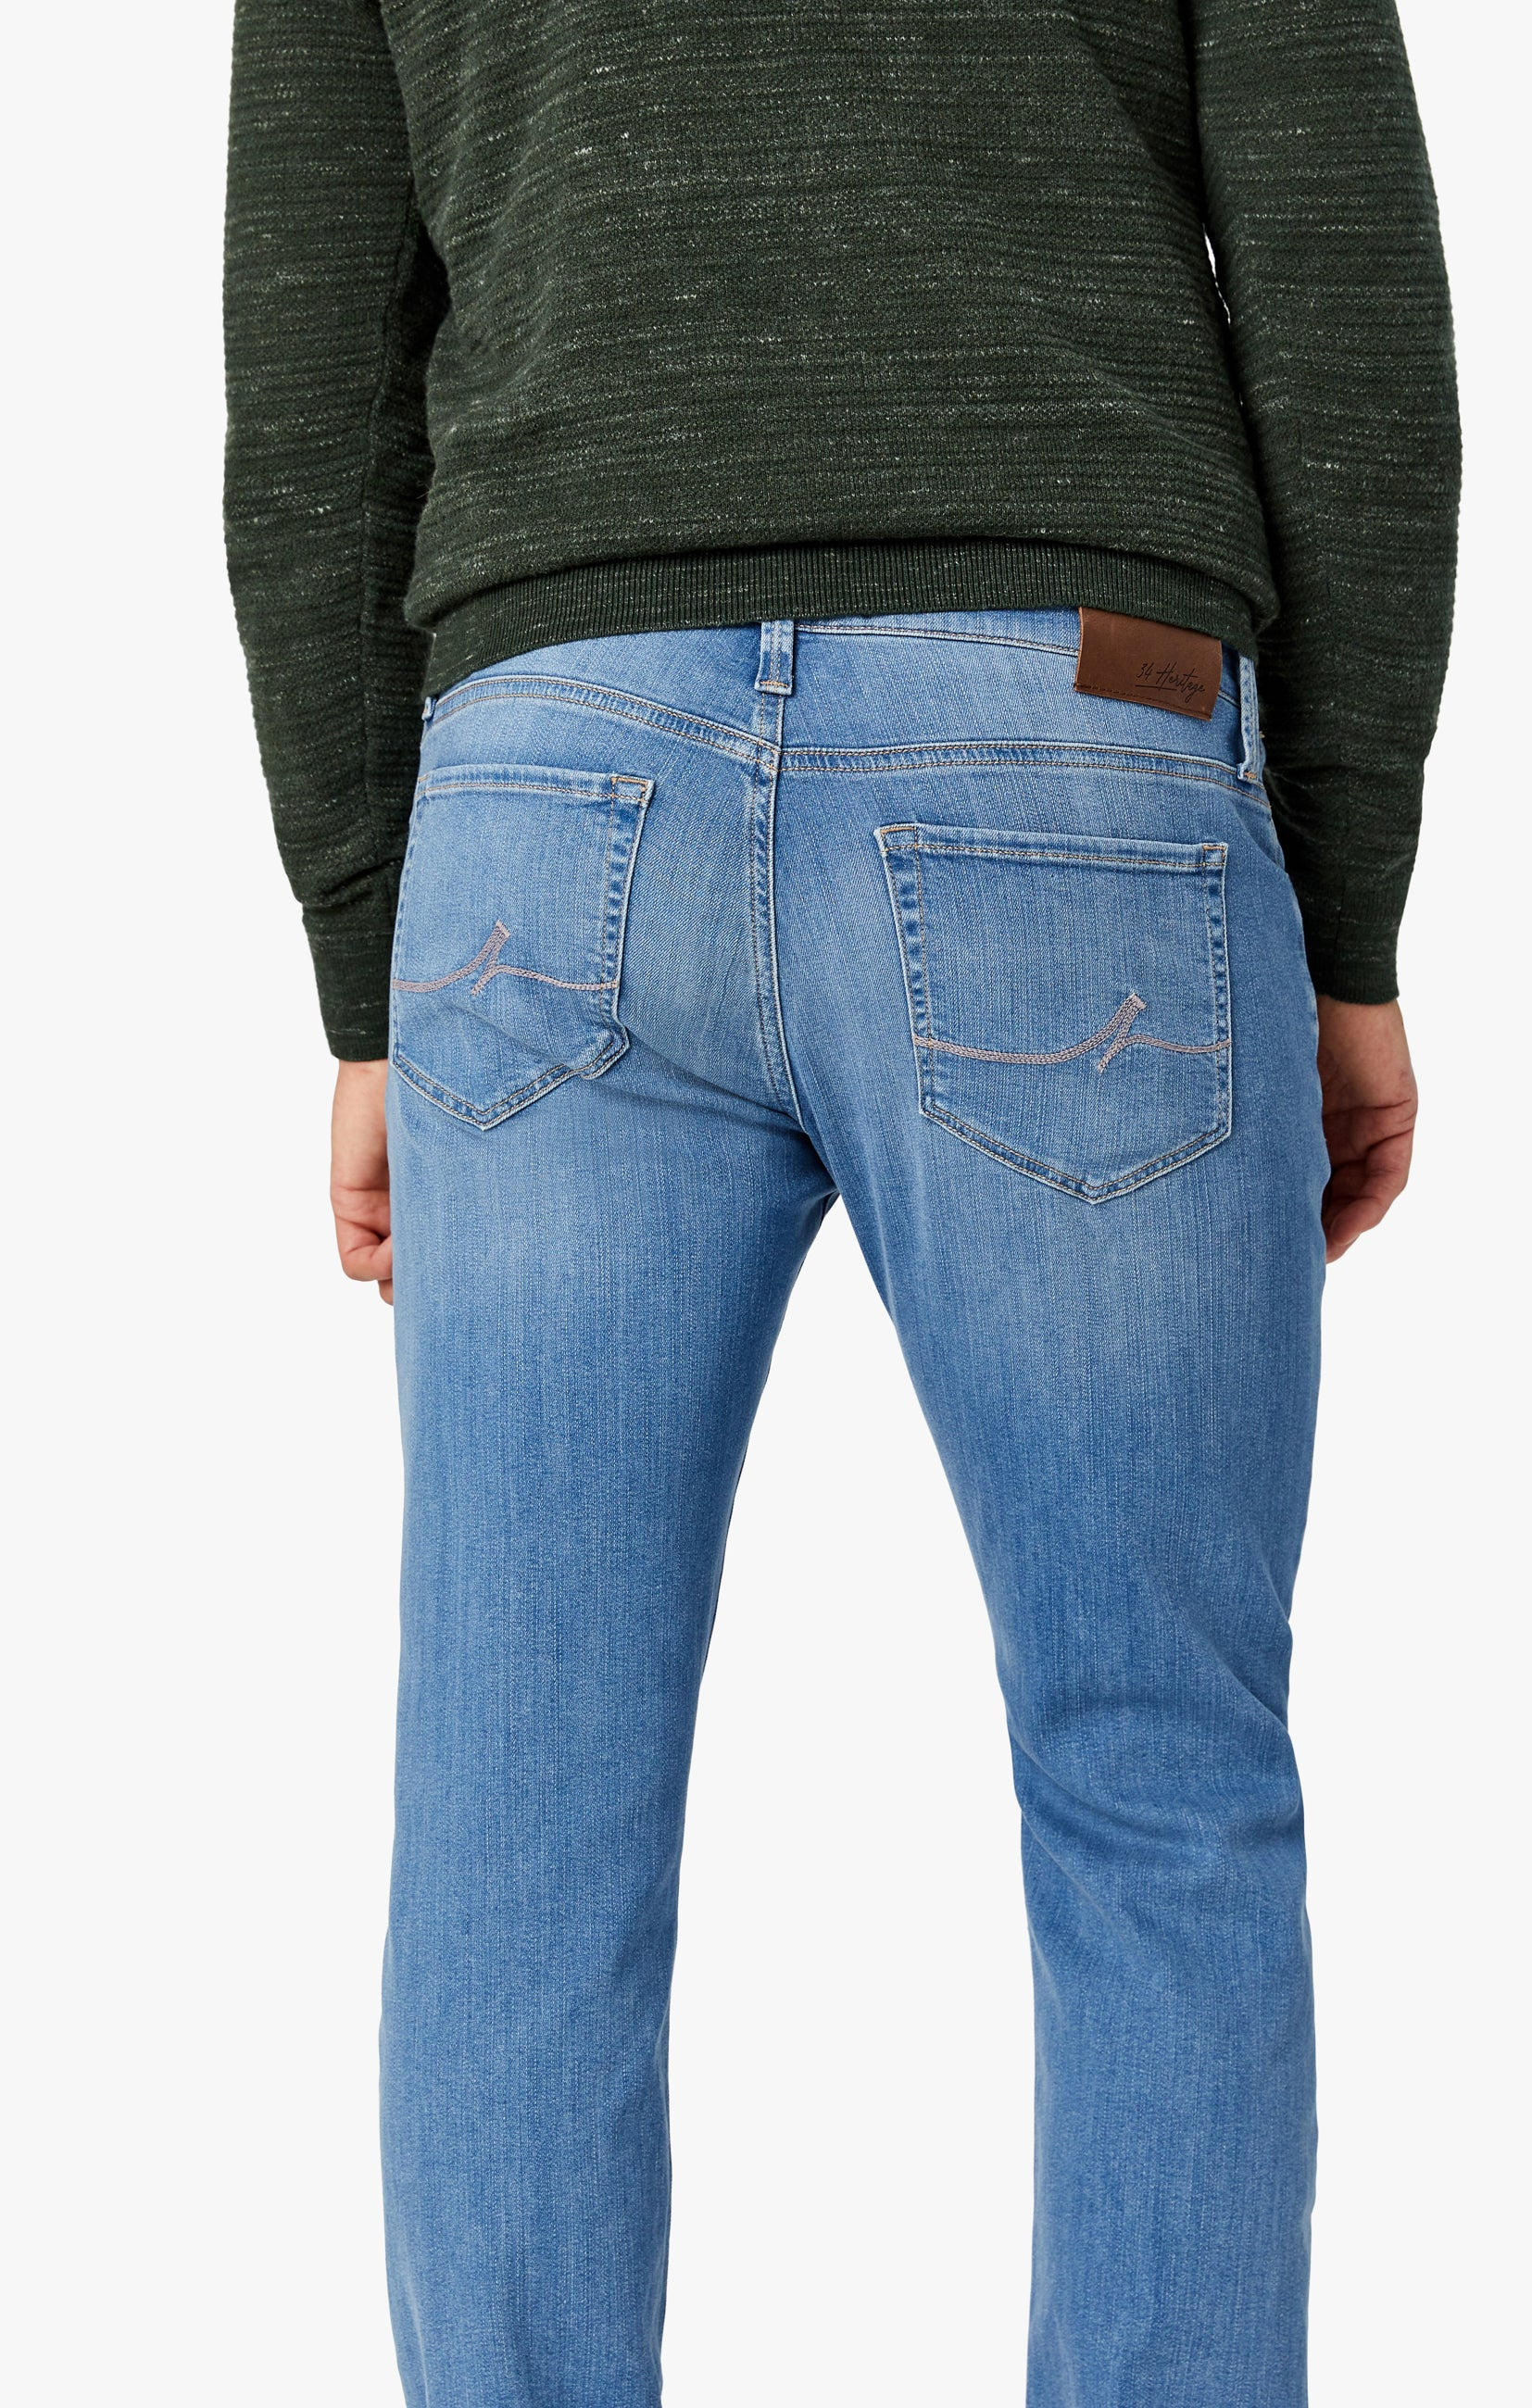 Charisma Relaxed Straight Jeans In Light Shaded Ultra Image 4